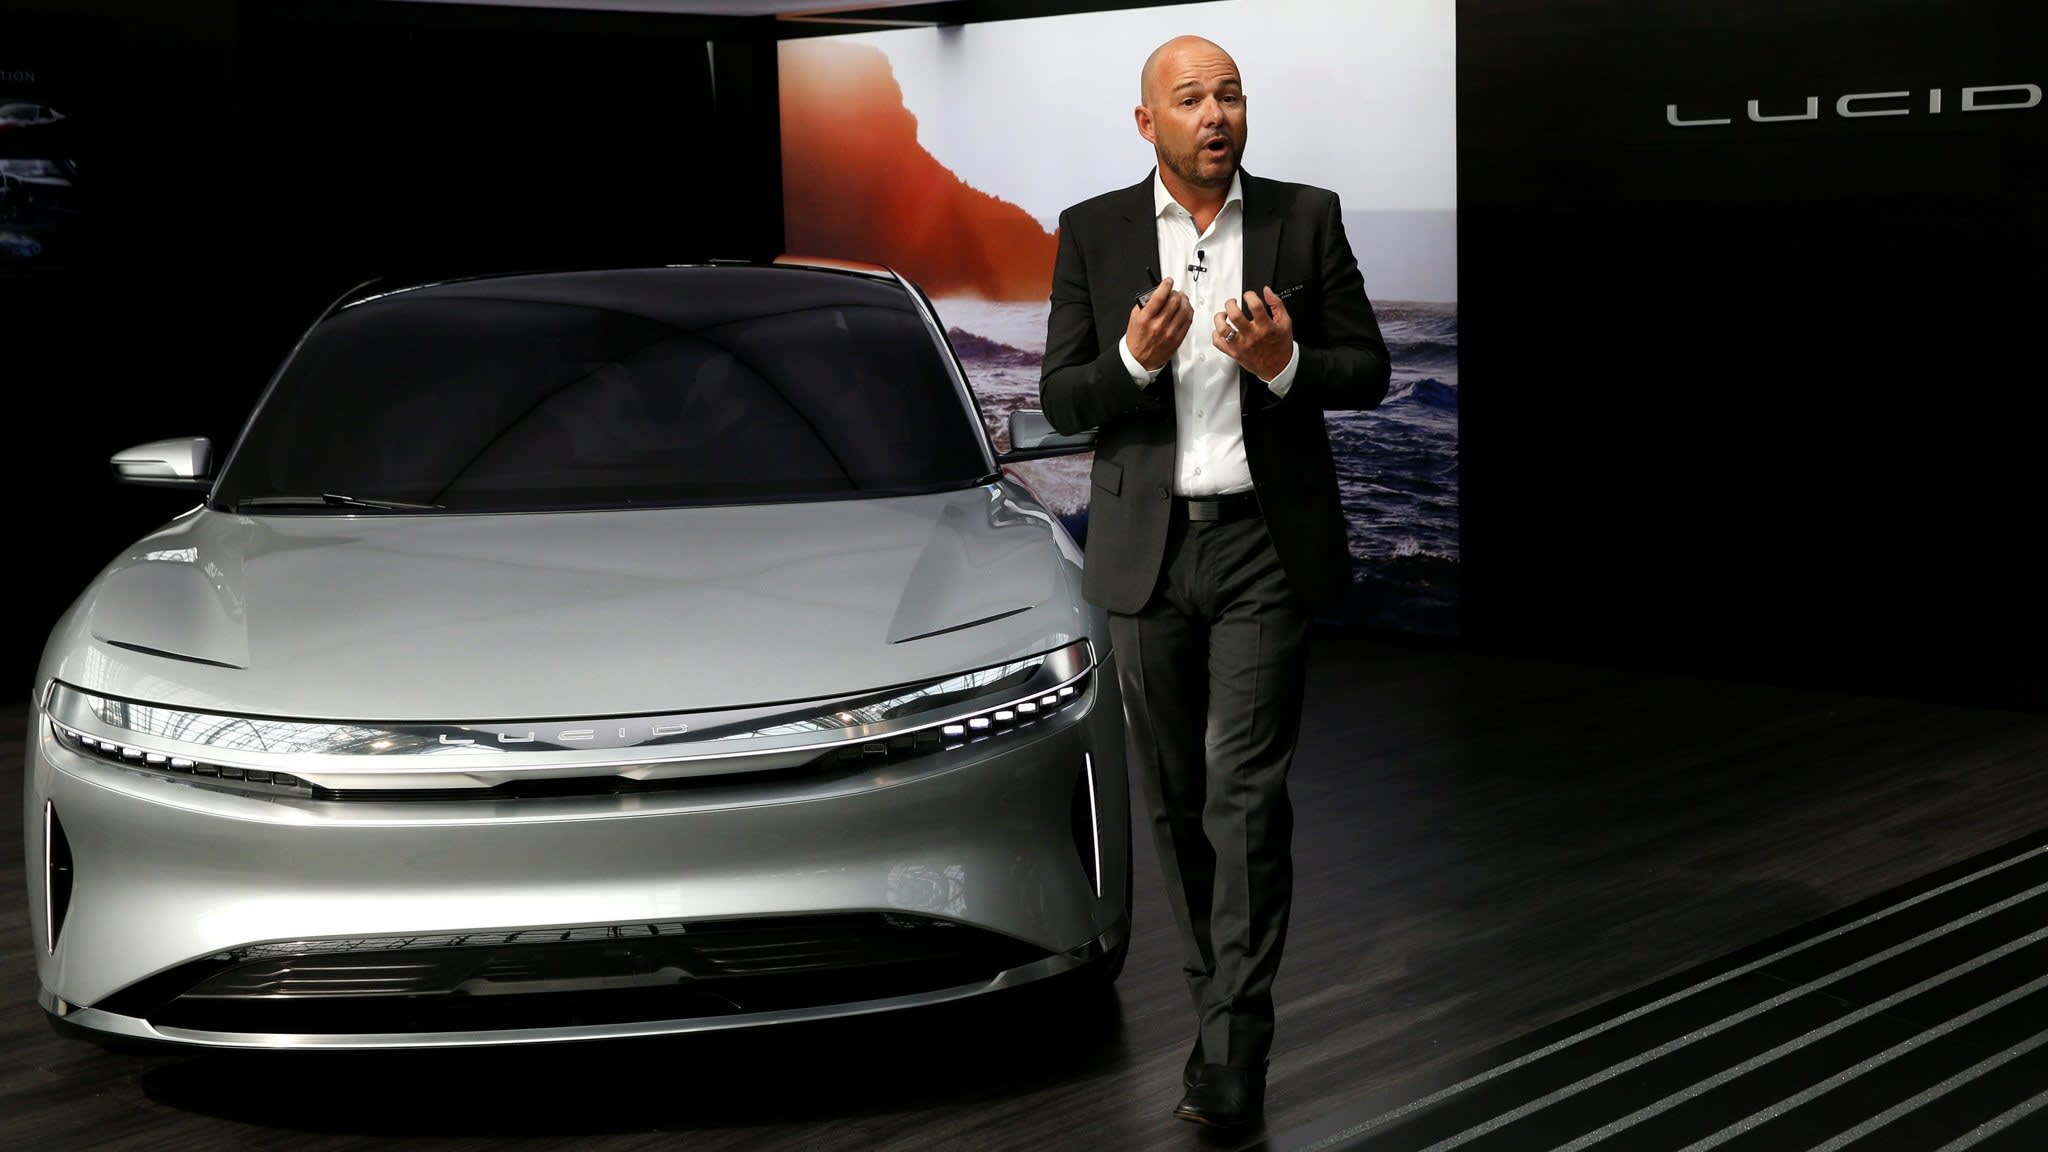 Saudi sovereign wealth fund to invest $1bn in Tesla rival Lucid Motors